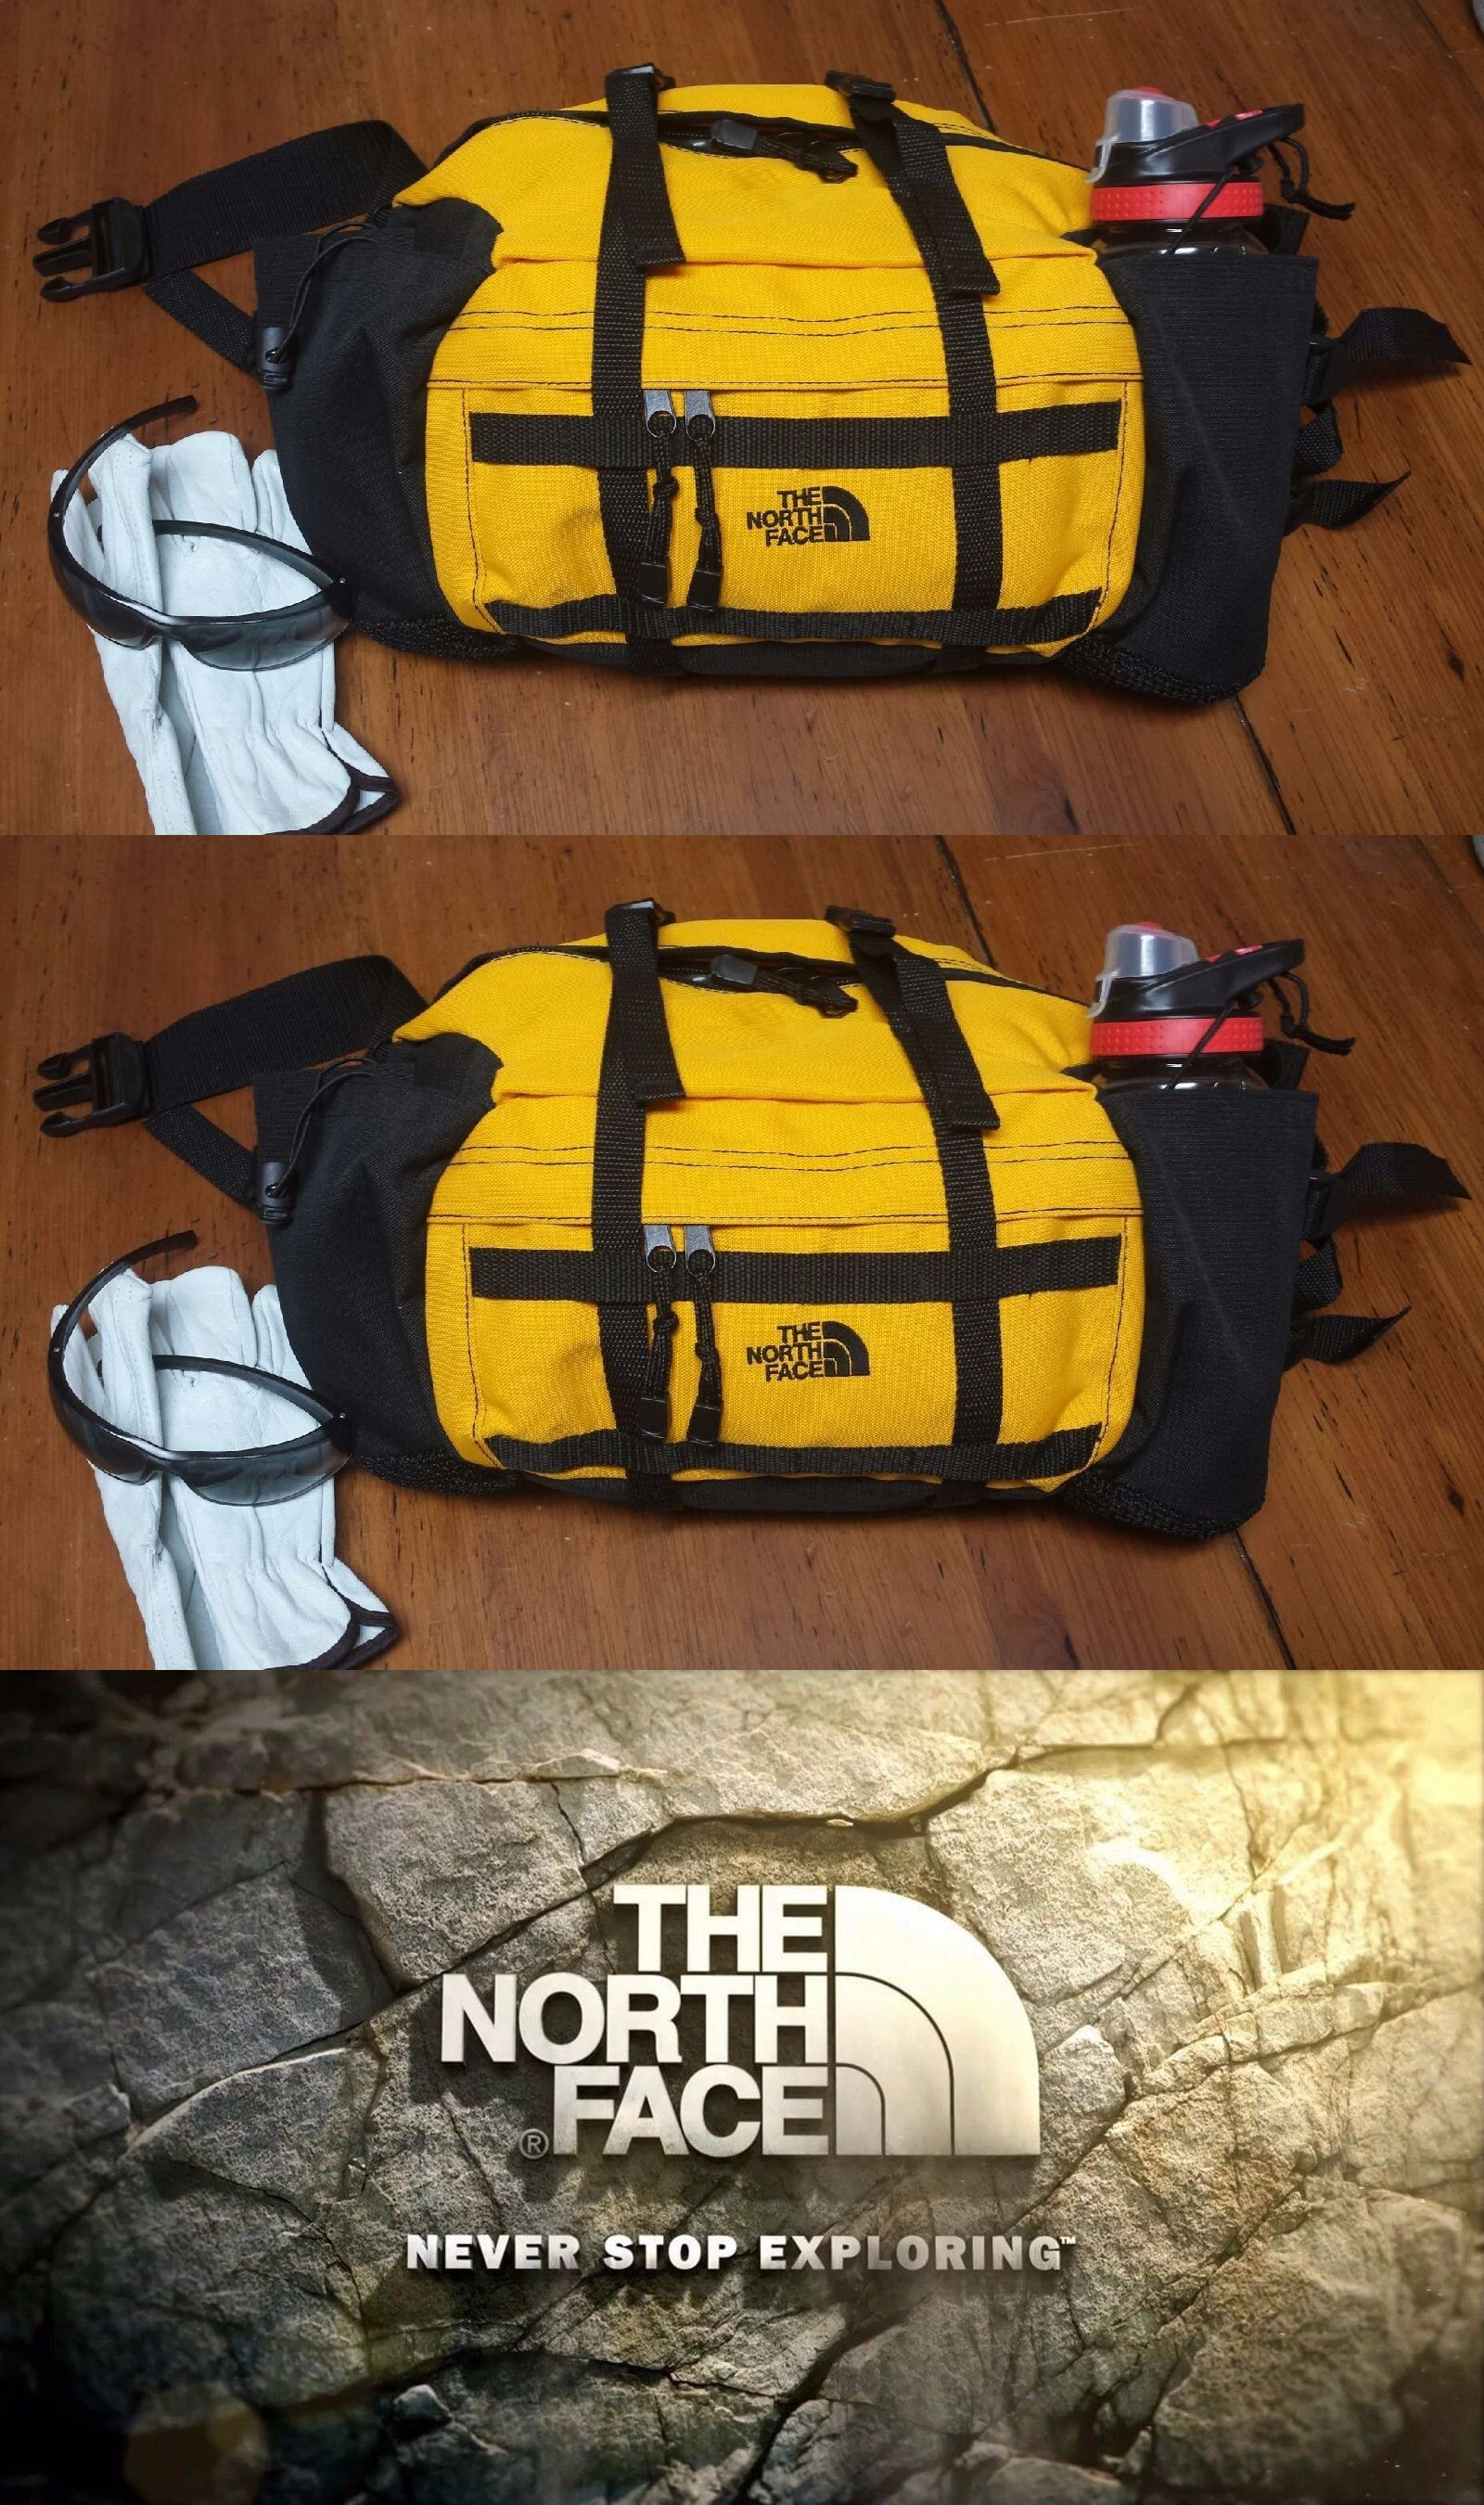 84ebe8e0f19 Waist Packs and Bags 181380  The North Face Mountain Bike Lumbar Day Pack  -  BUY IT NOW ONLY   69.99 on eBay!